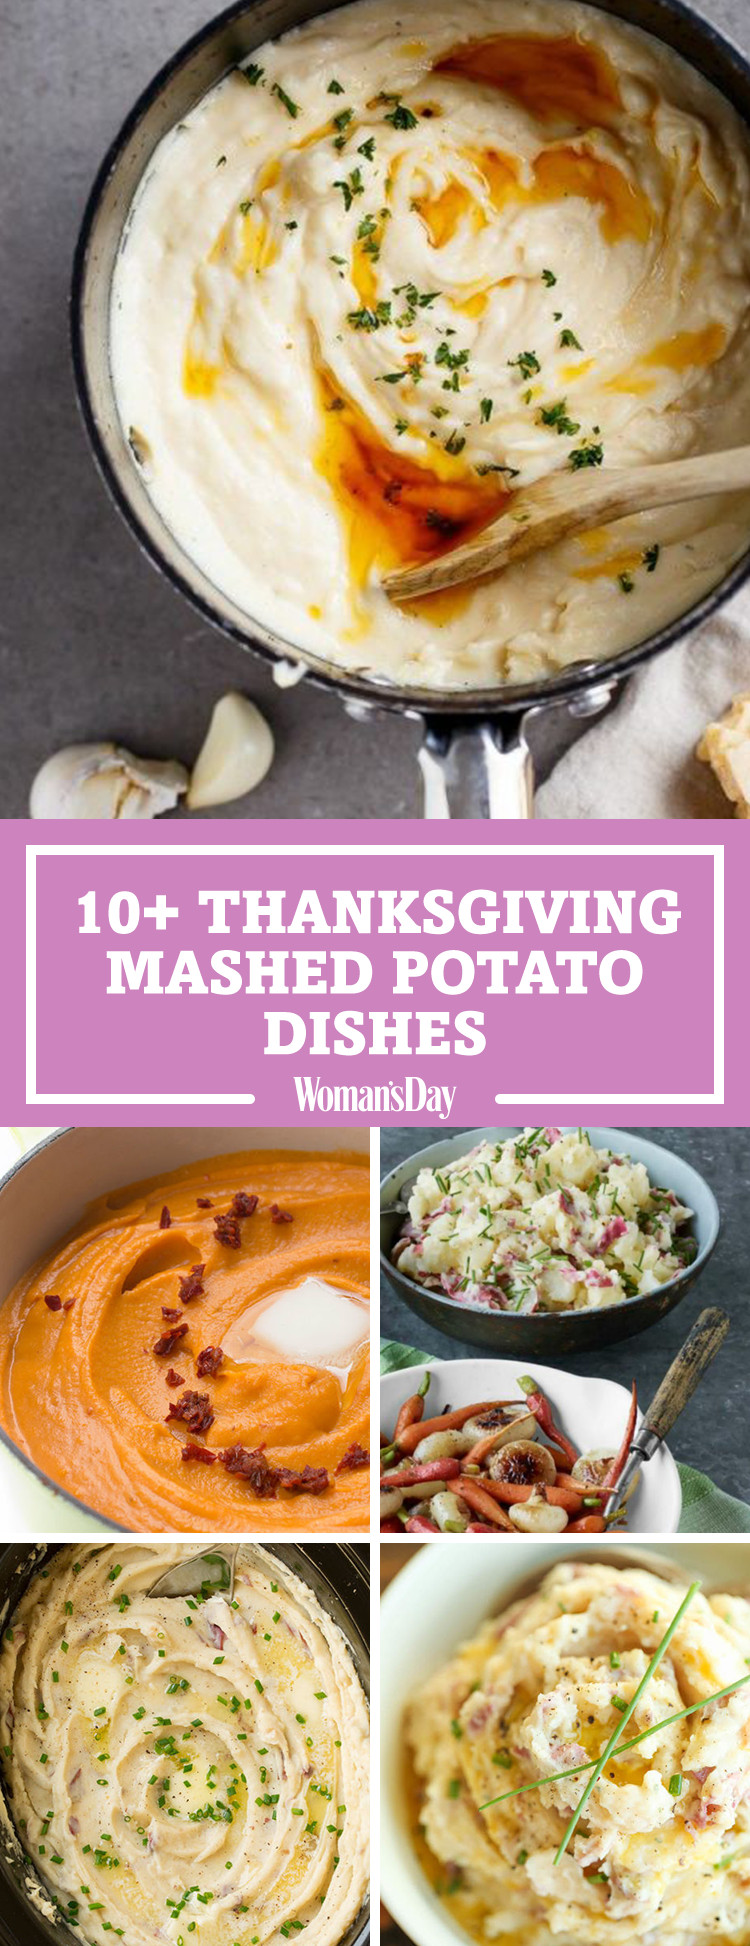 Mashed Potatoes For Thanksgiving  14 Best Mashed Potato Recipes How to Make Mashed